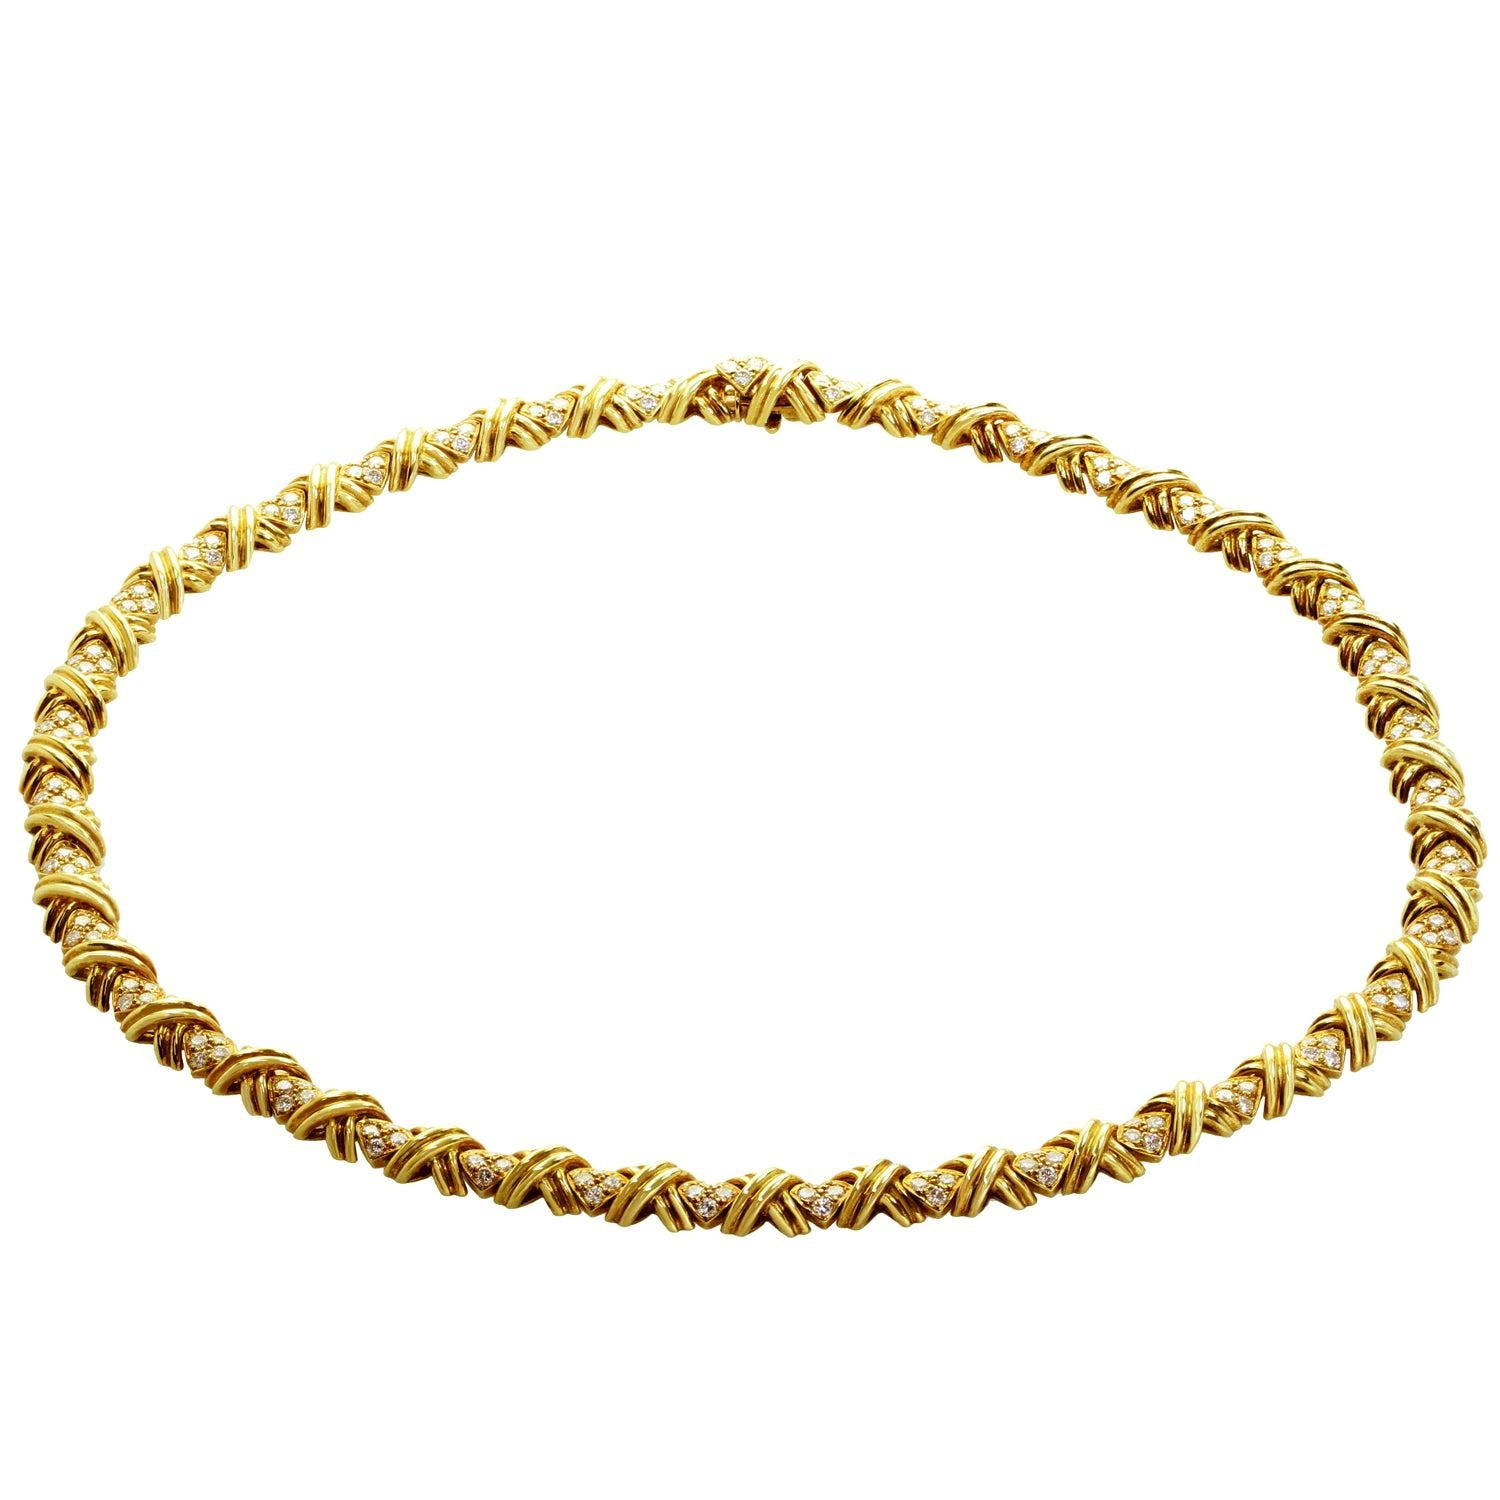 4a40e264c Diamond, Vintage and Antique Necklaces - 20,279 For Sale at 1stdibs